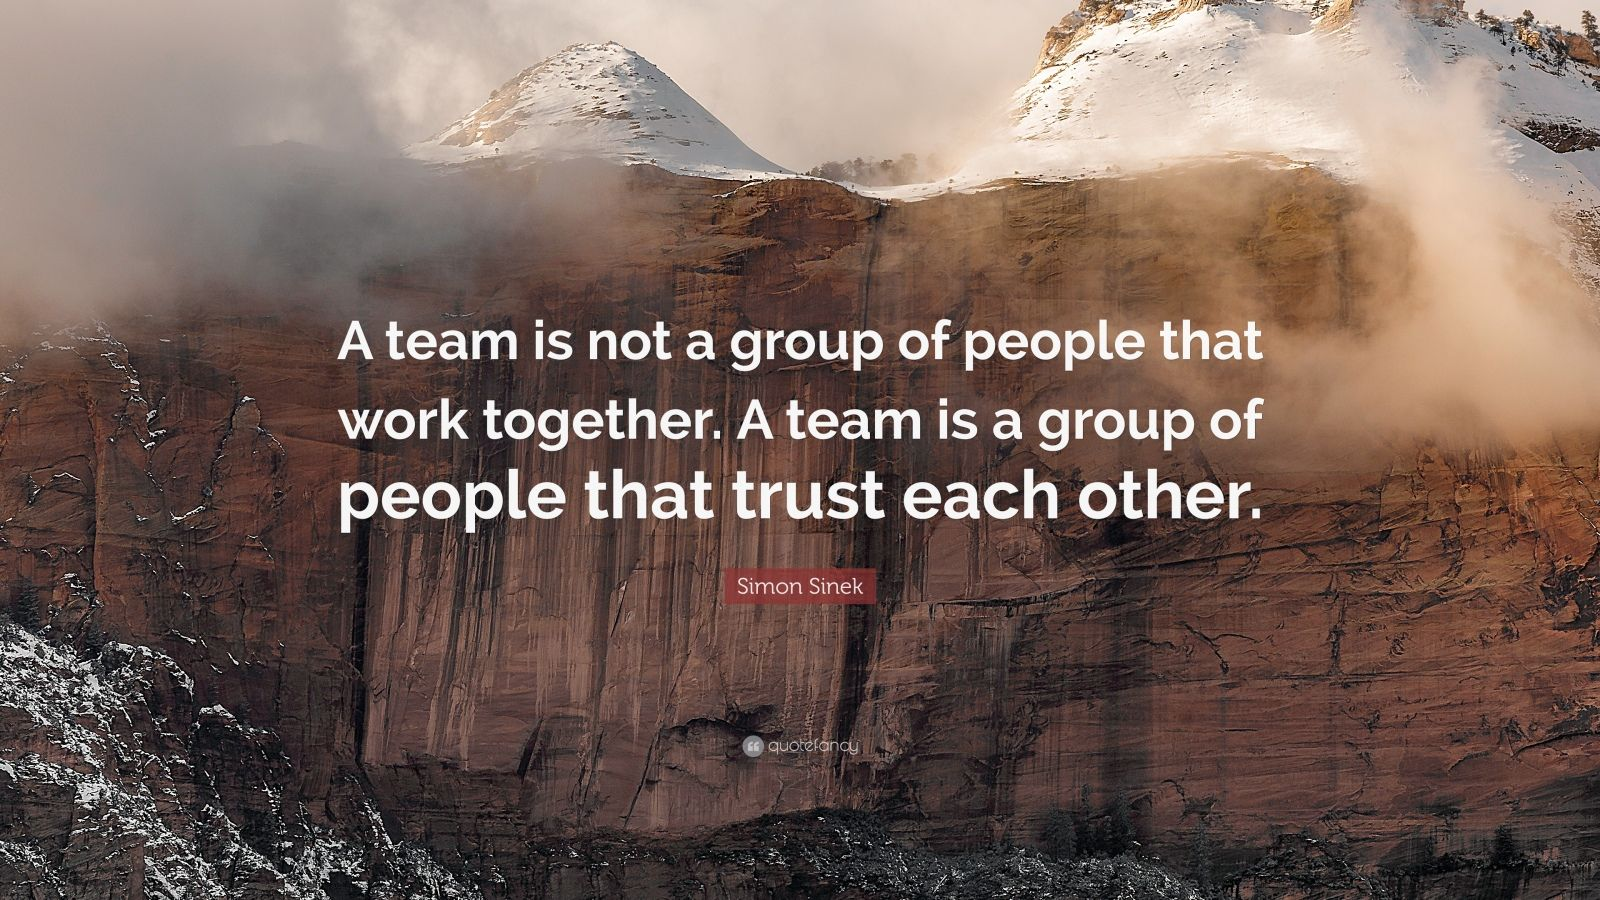 "Quotes About People: ""A team is not a group of people that work together. A team is a group of people that trust each other."" — Simon Sinek"